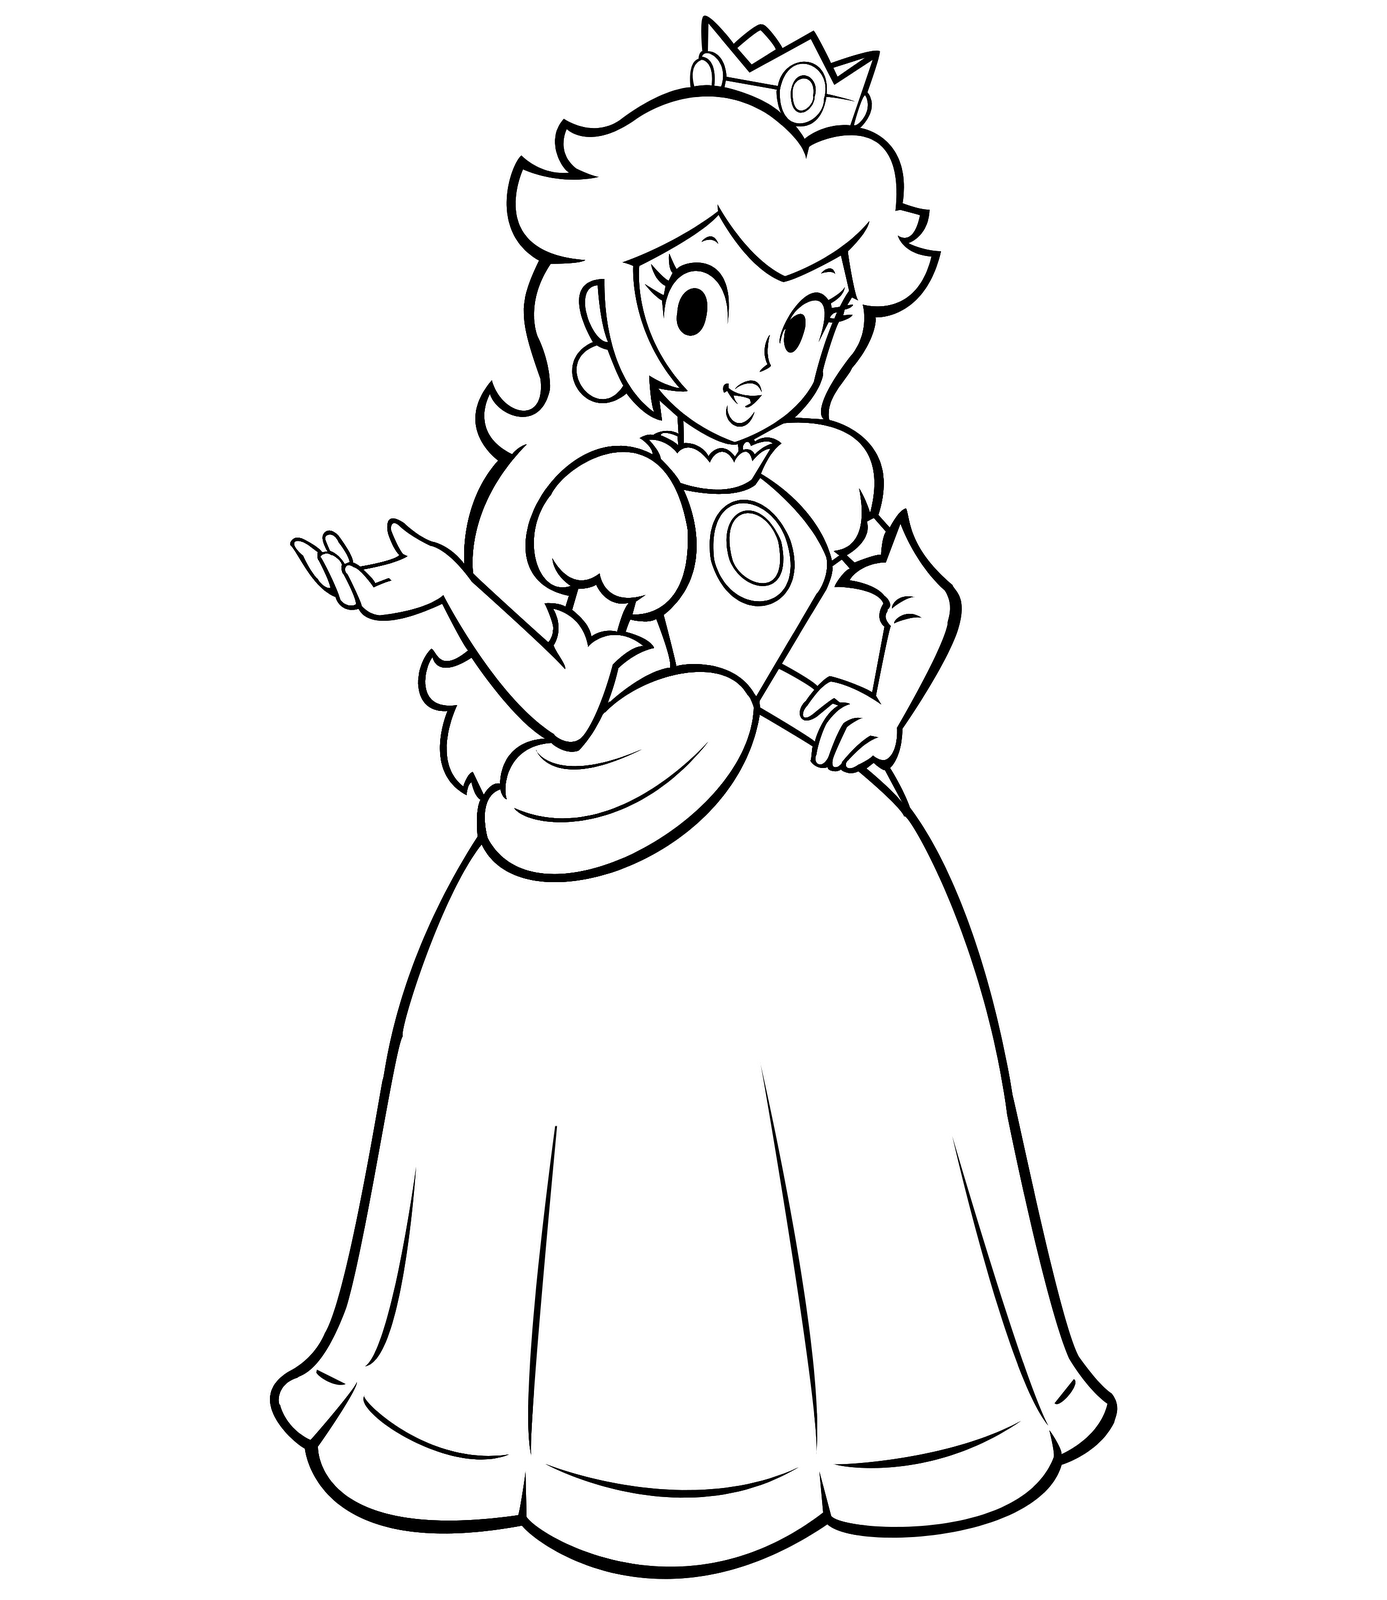 Coloring Fun Princess peach